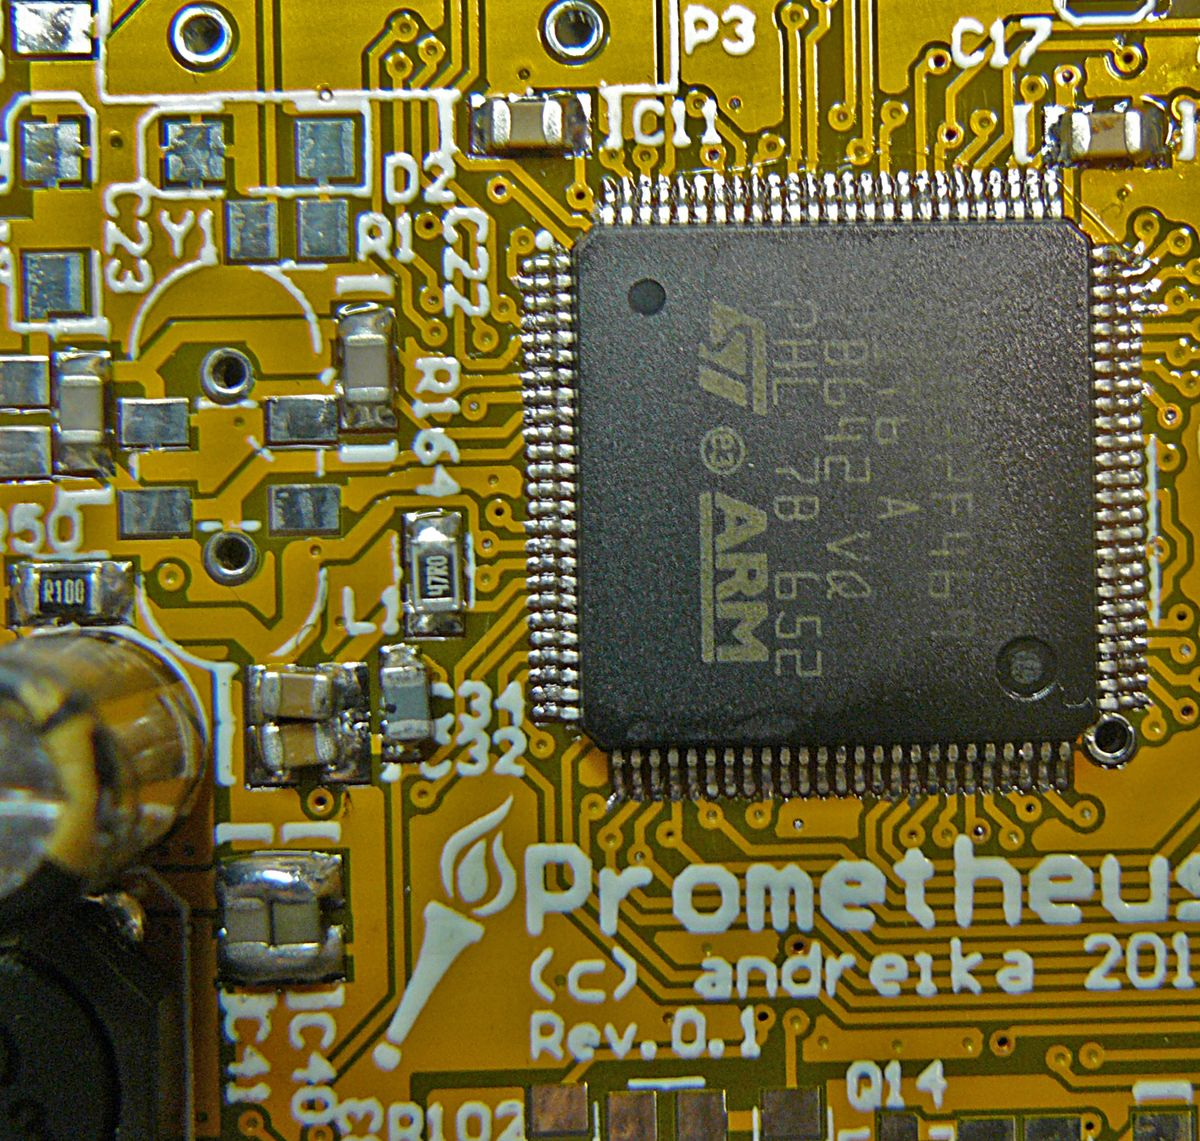 Prometheus assembly 2c-pcb1.jpg